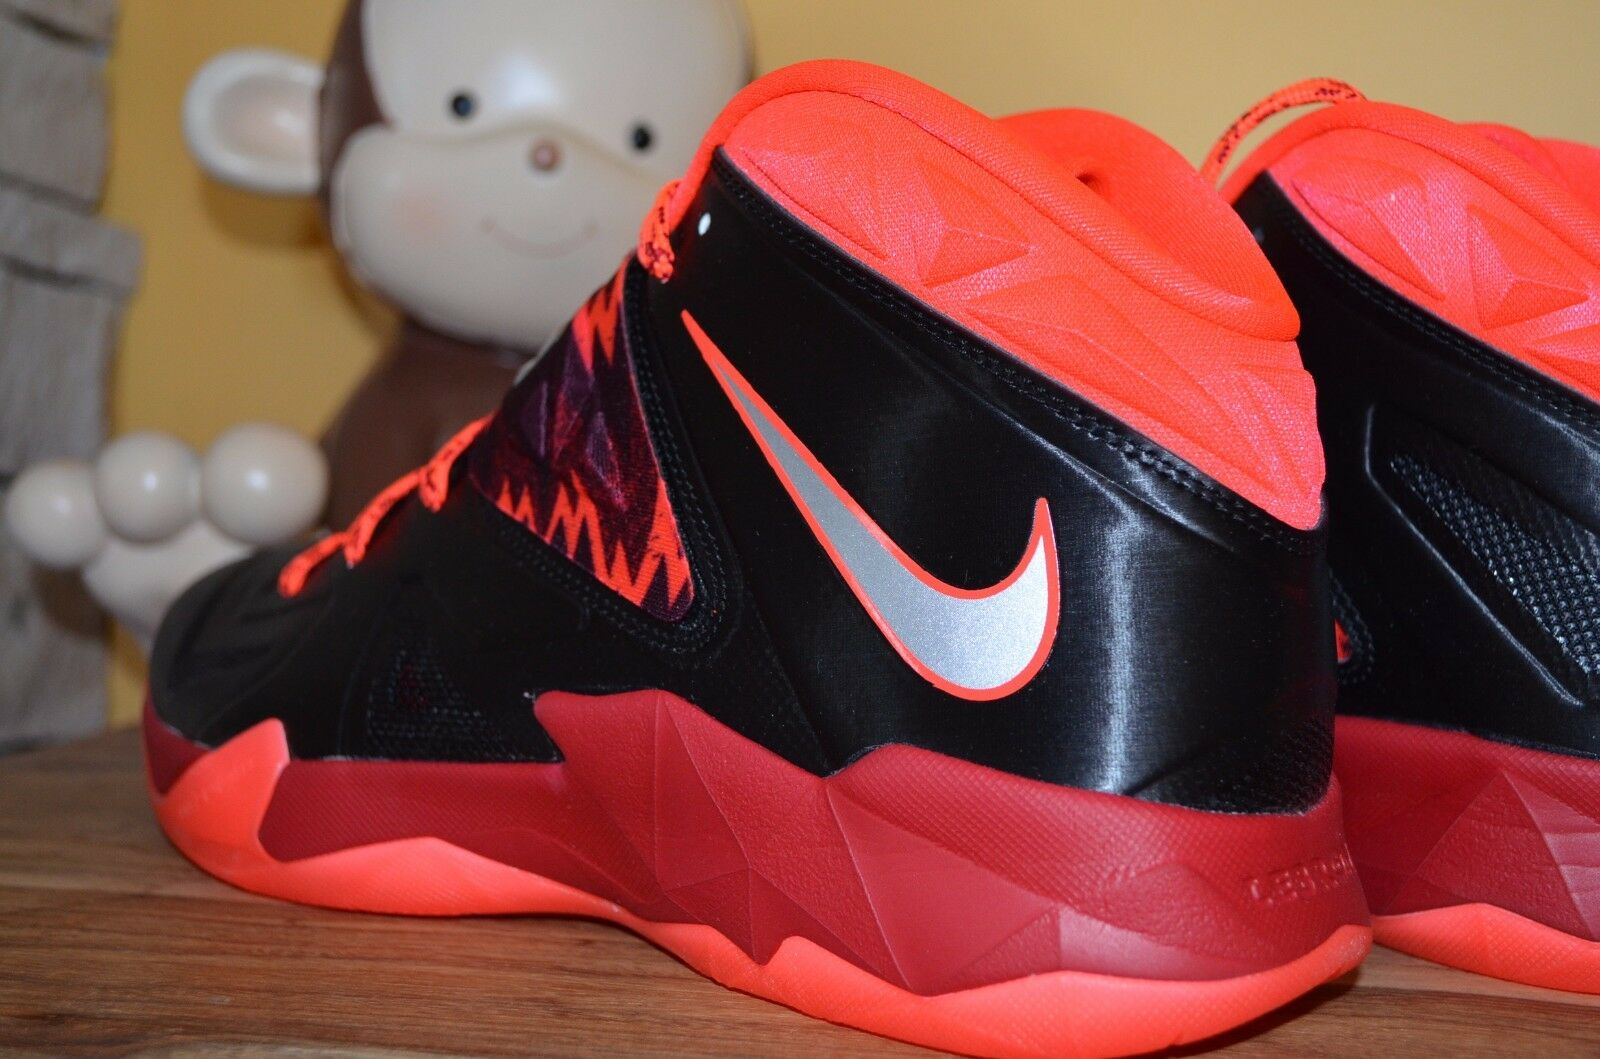 092a1e47fbc NEW NIKE ZOOM SOLDIER VII PP Black Orange Gym Red Red Red SZ 10 - 13 ...